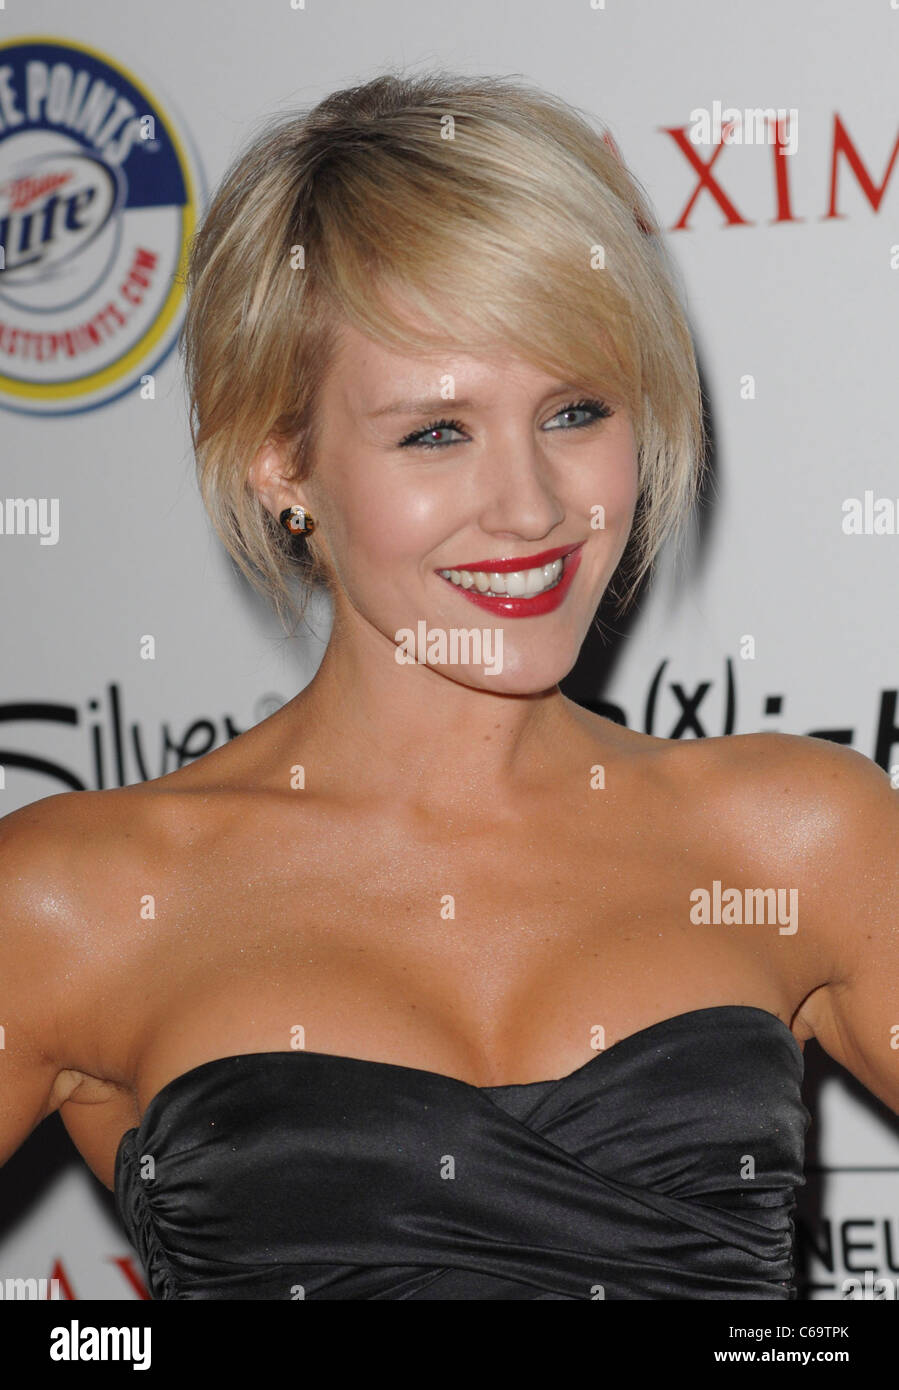 Nicky whelan at arrivals for the maxim hot 100 party eden los stock